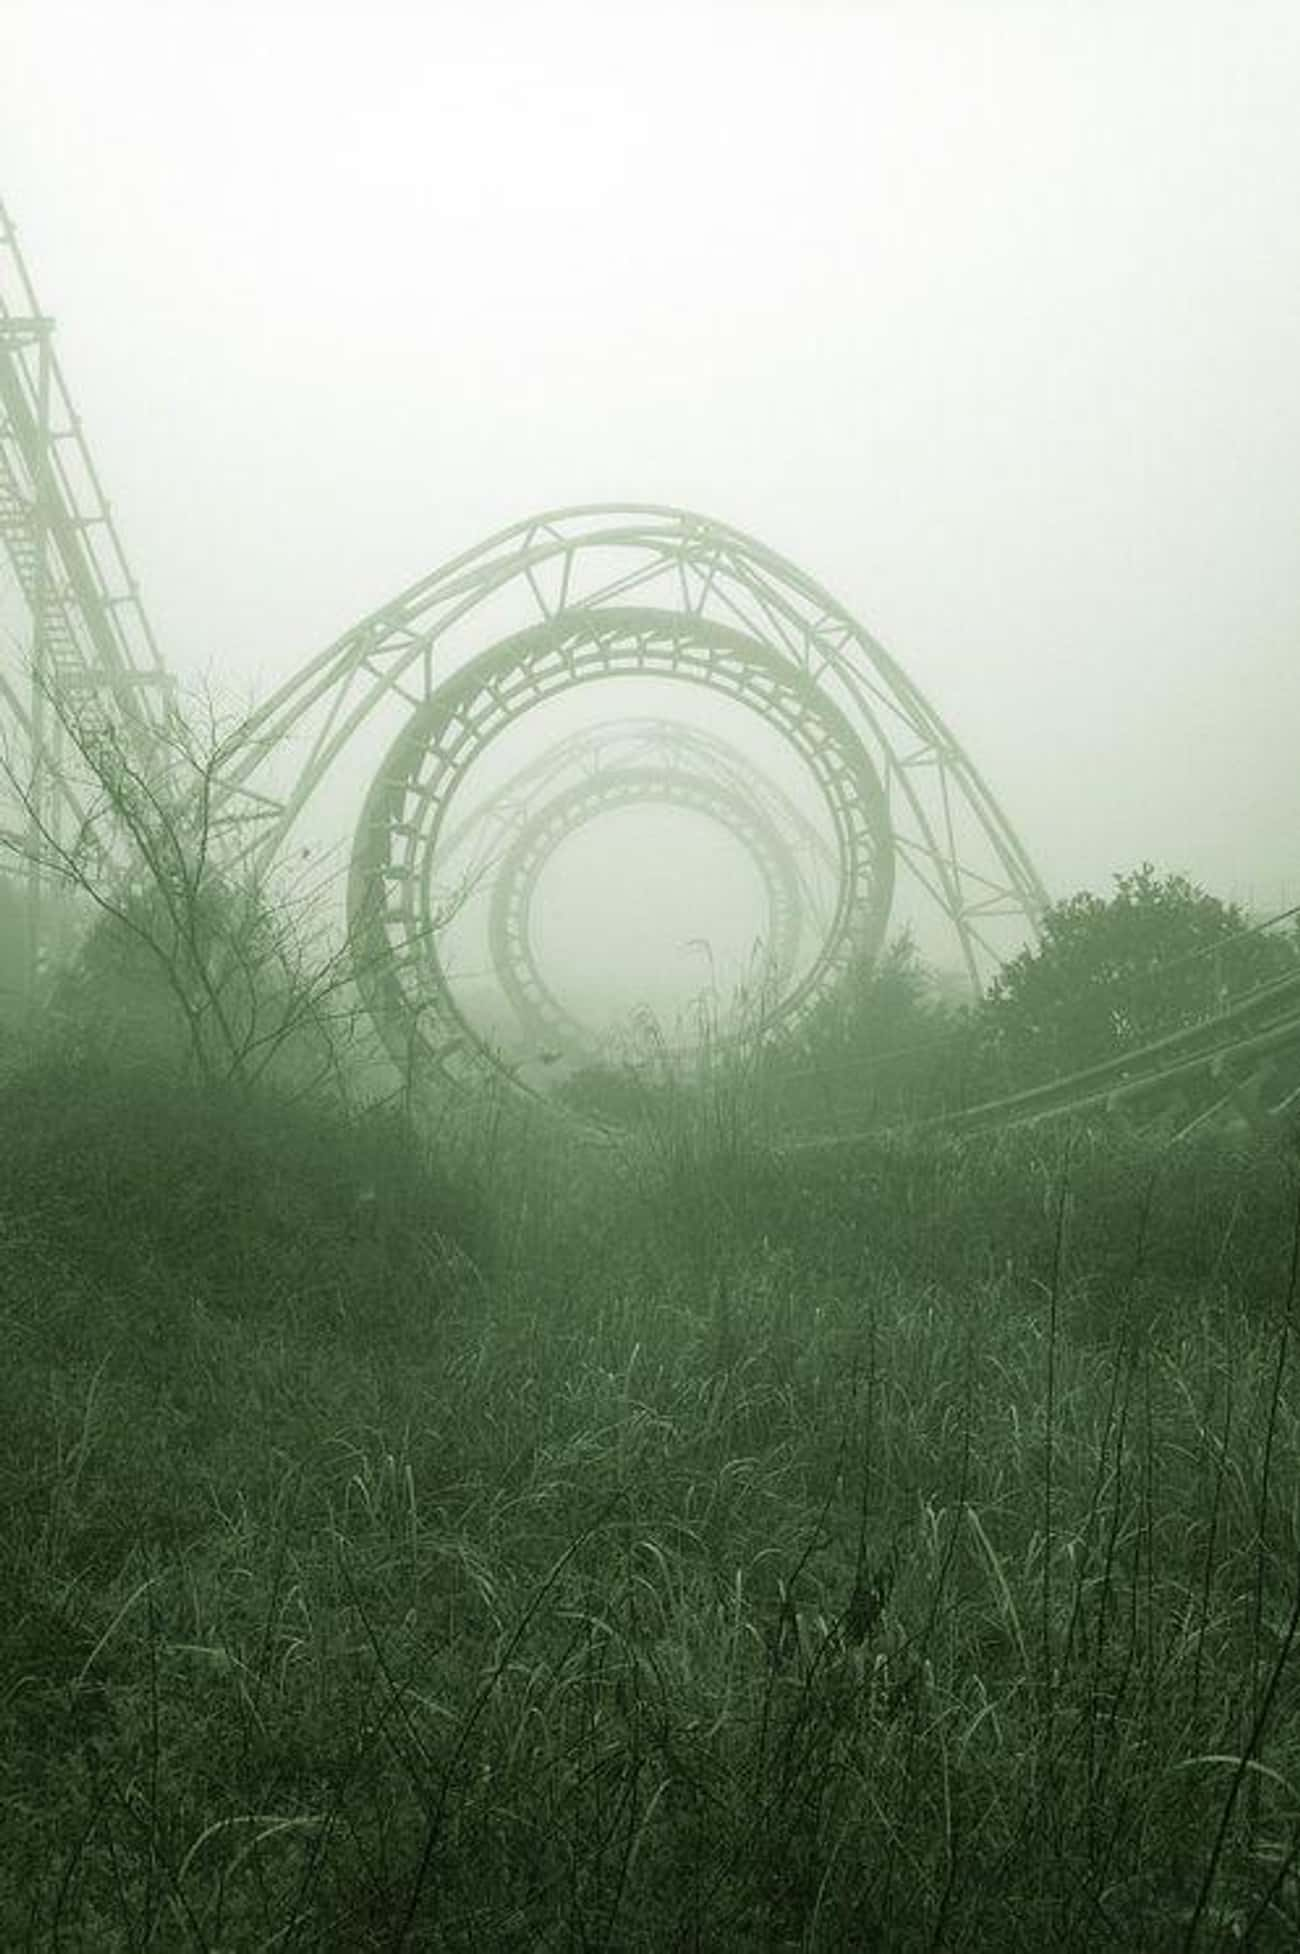 That Roller Coaster Was Probab is listed (or ranked) 4 on the list Creepy Pictures of Abandoned Amusement Parks